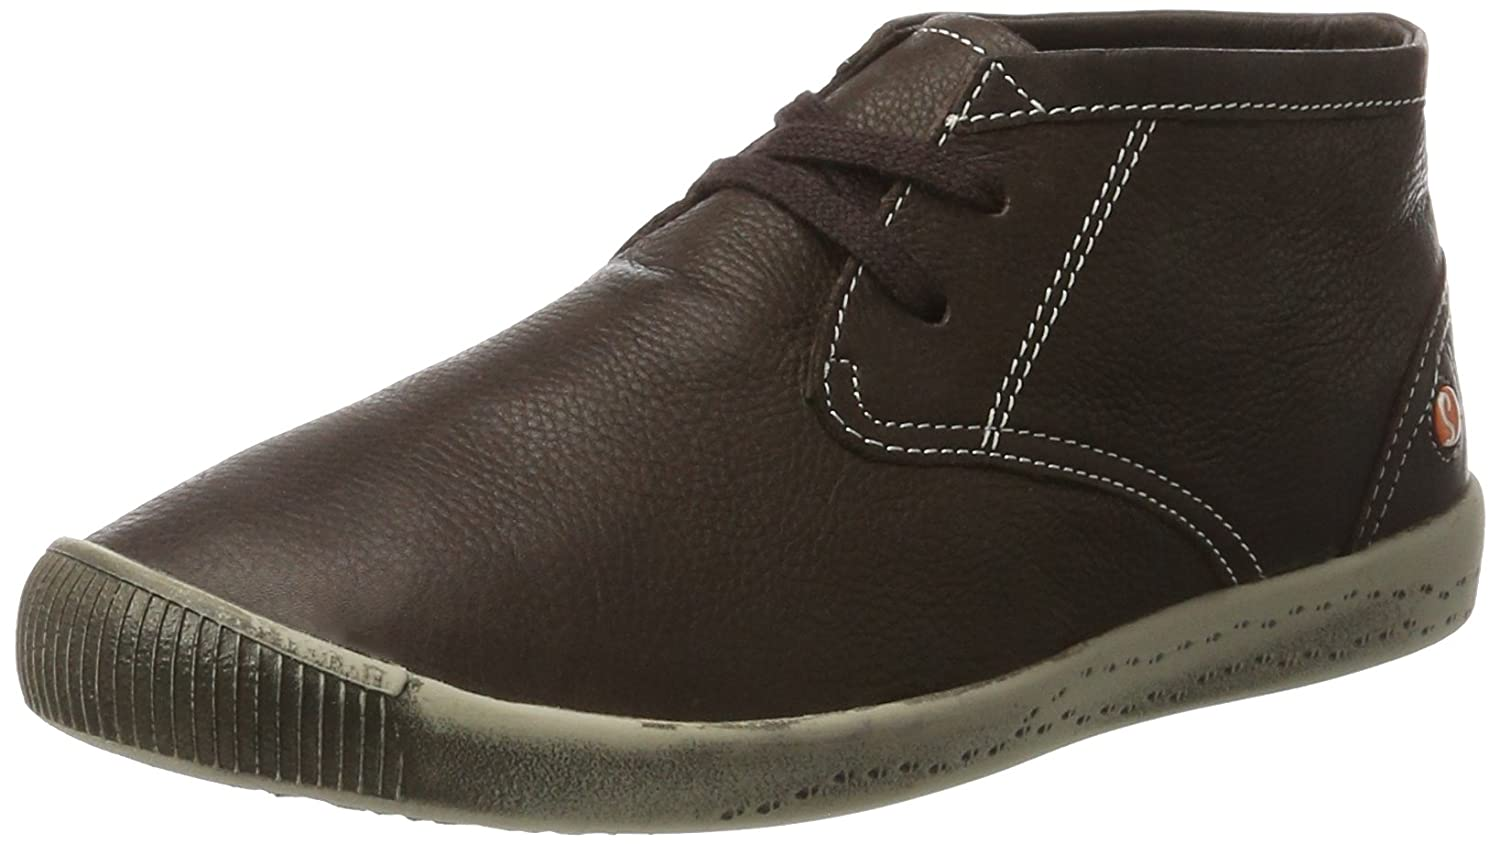 Softinos Indira Smooth, Botas Chukka para Mujer39 EU|Marrón (Dk Brown 531)